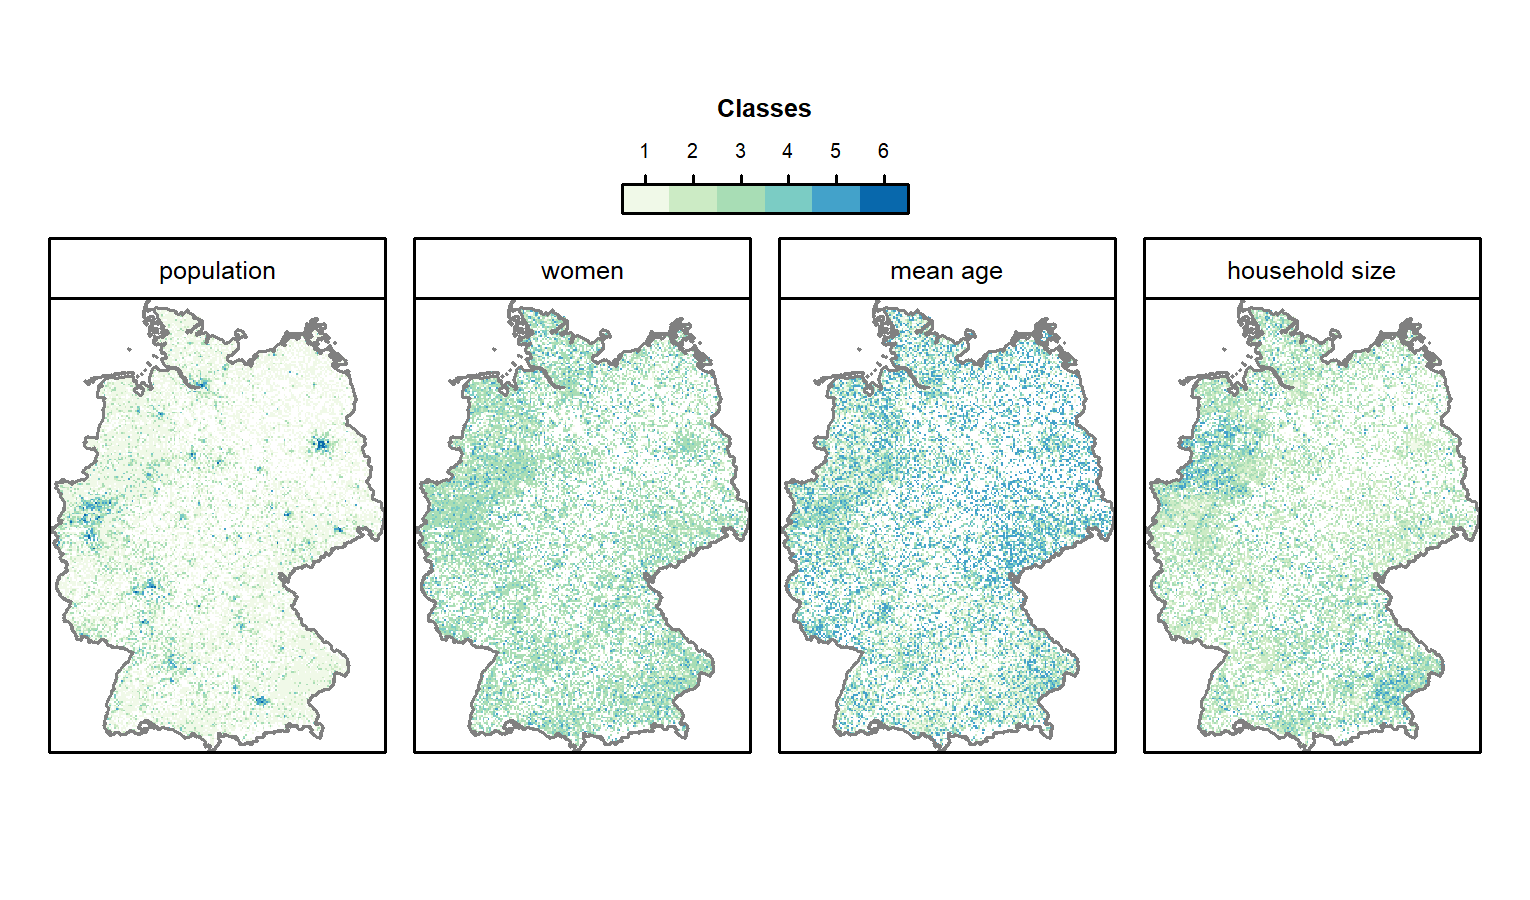 Gridded German census data of 2011. See Table \@ref(tab:census-desc) for a description of the classes.